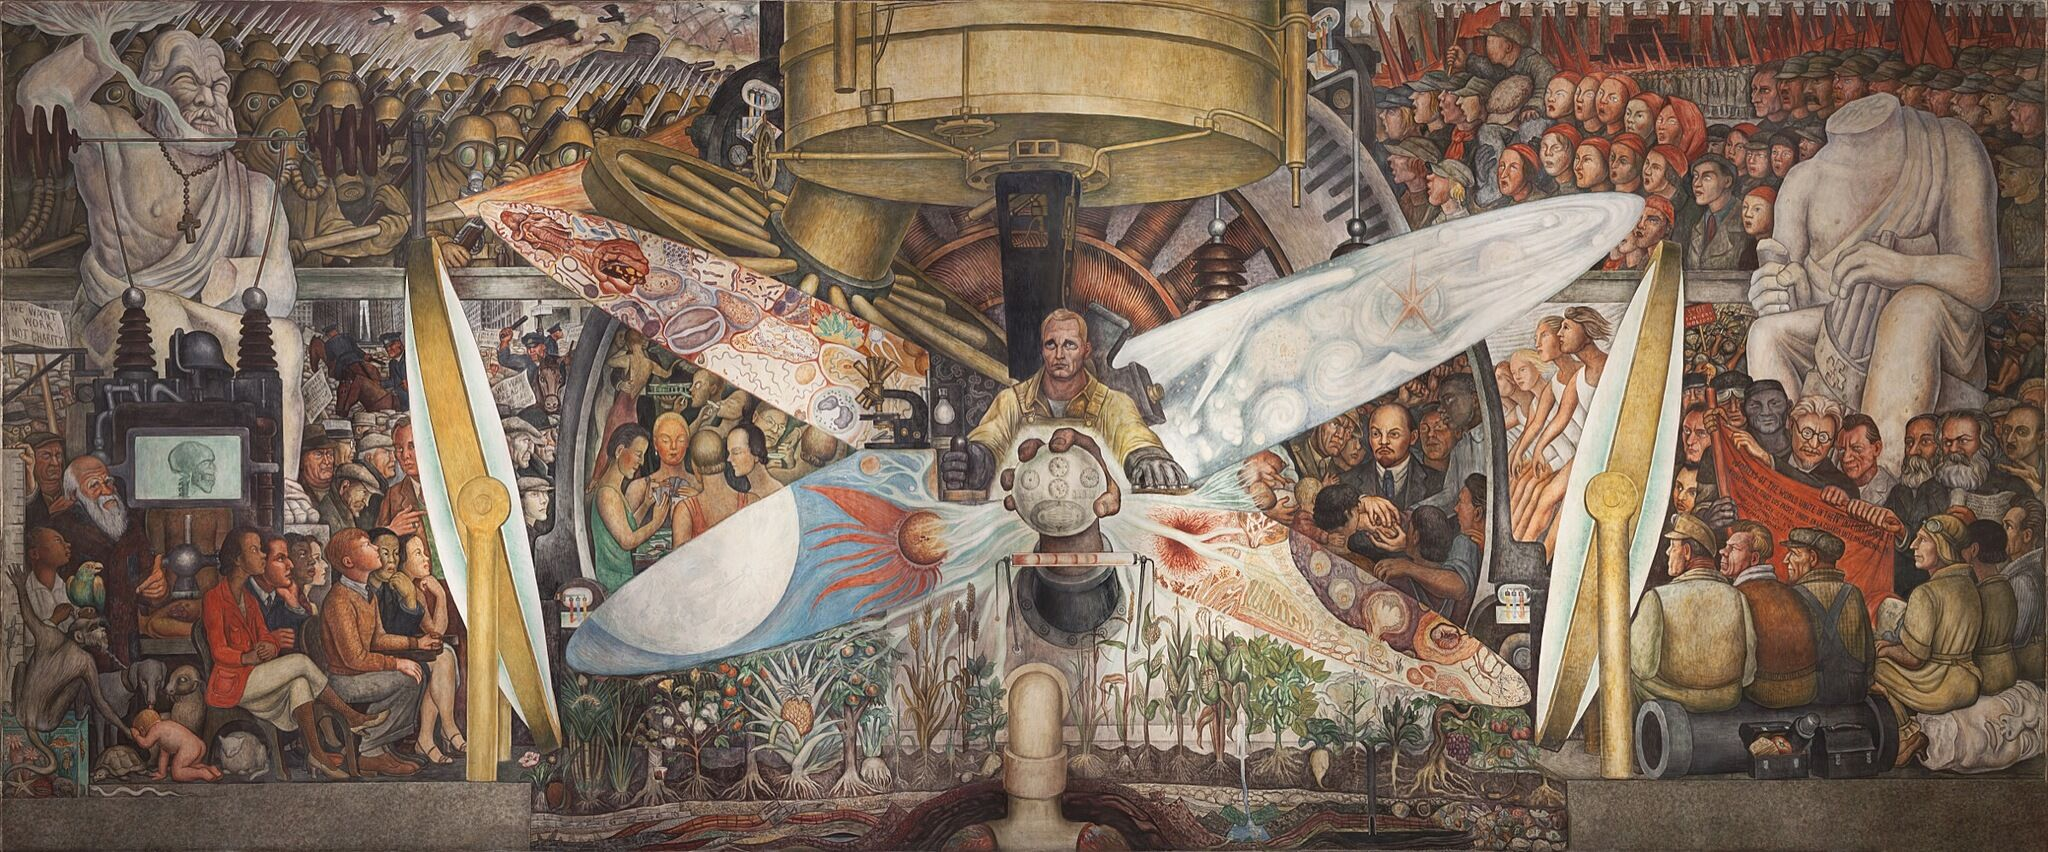 A long mural with a man at the center surrounded by various people and statues.